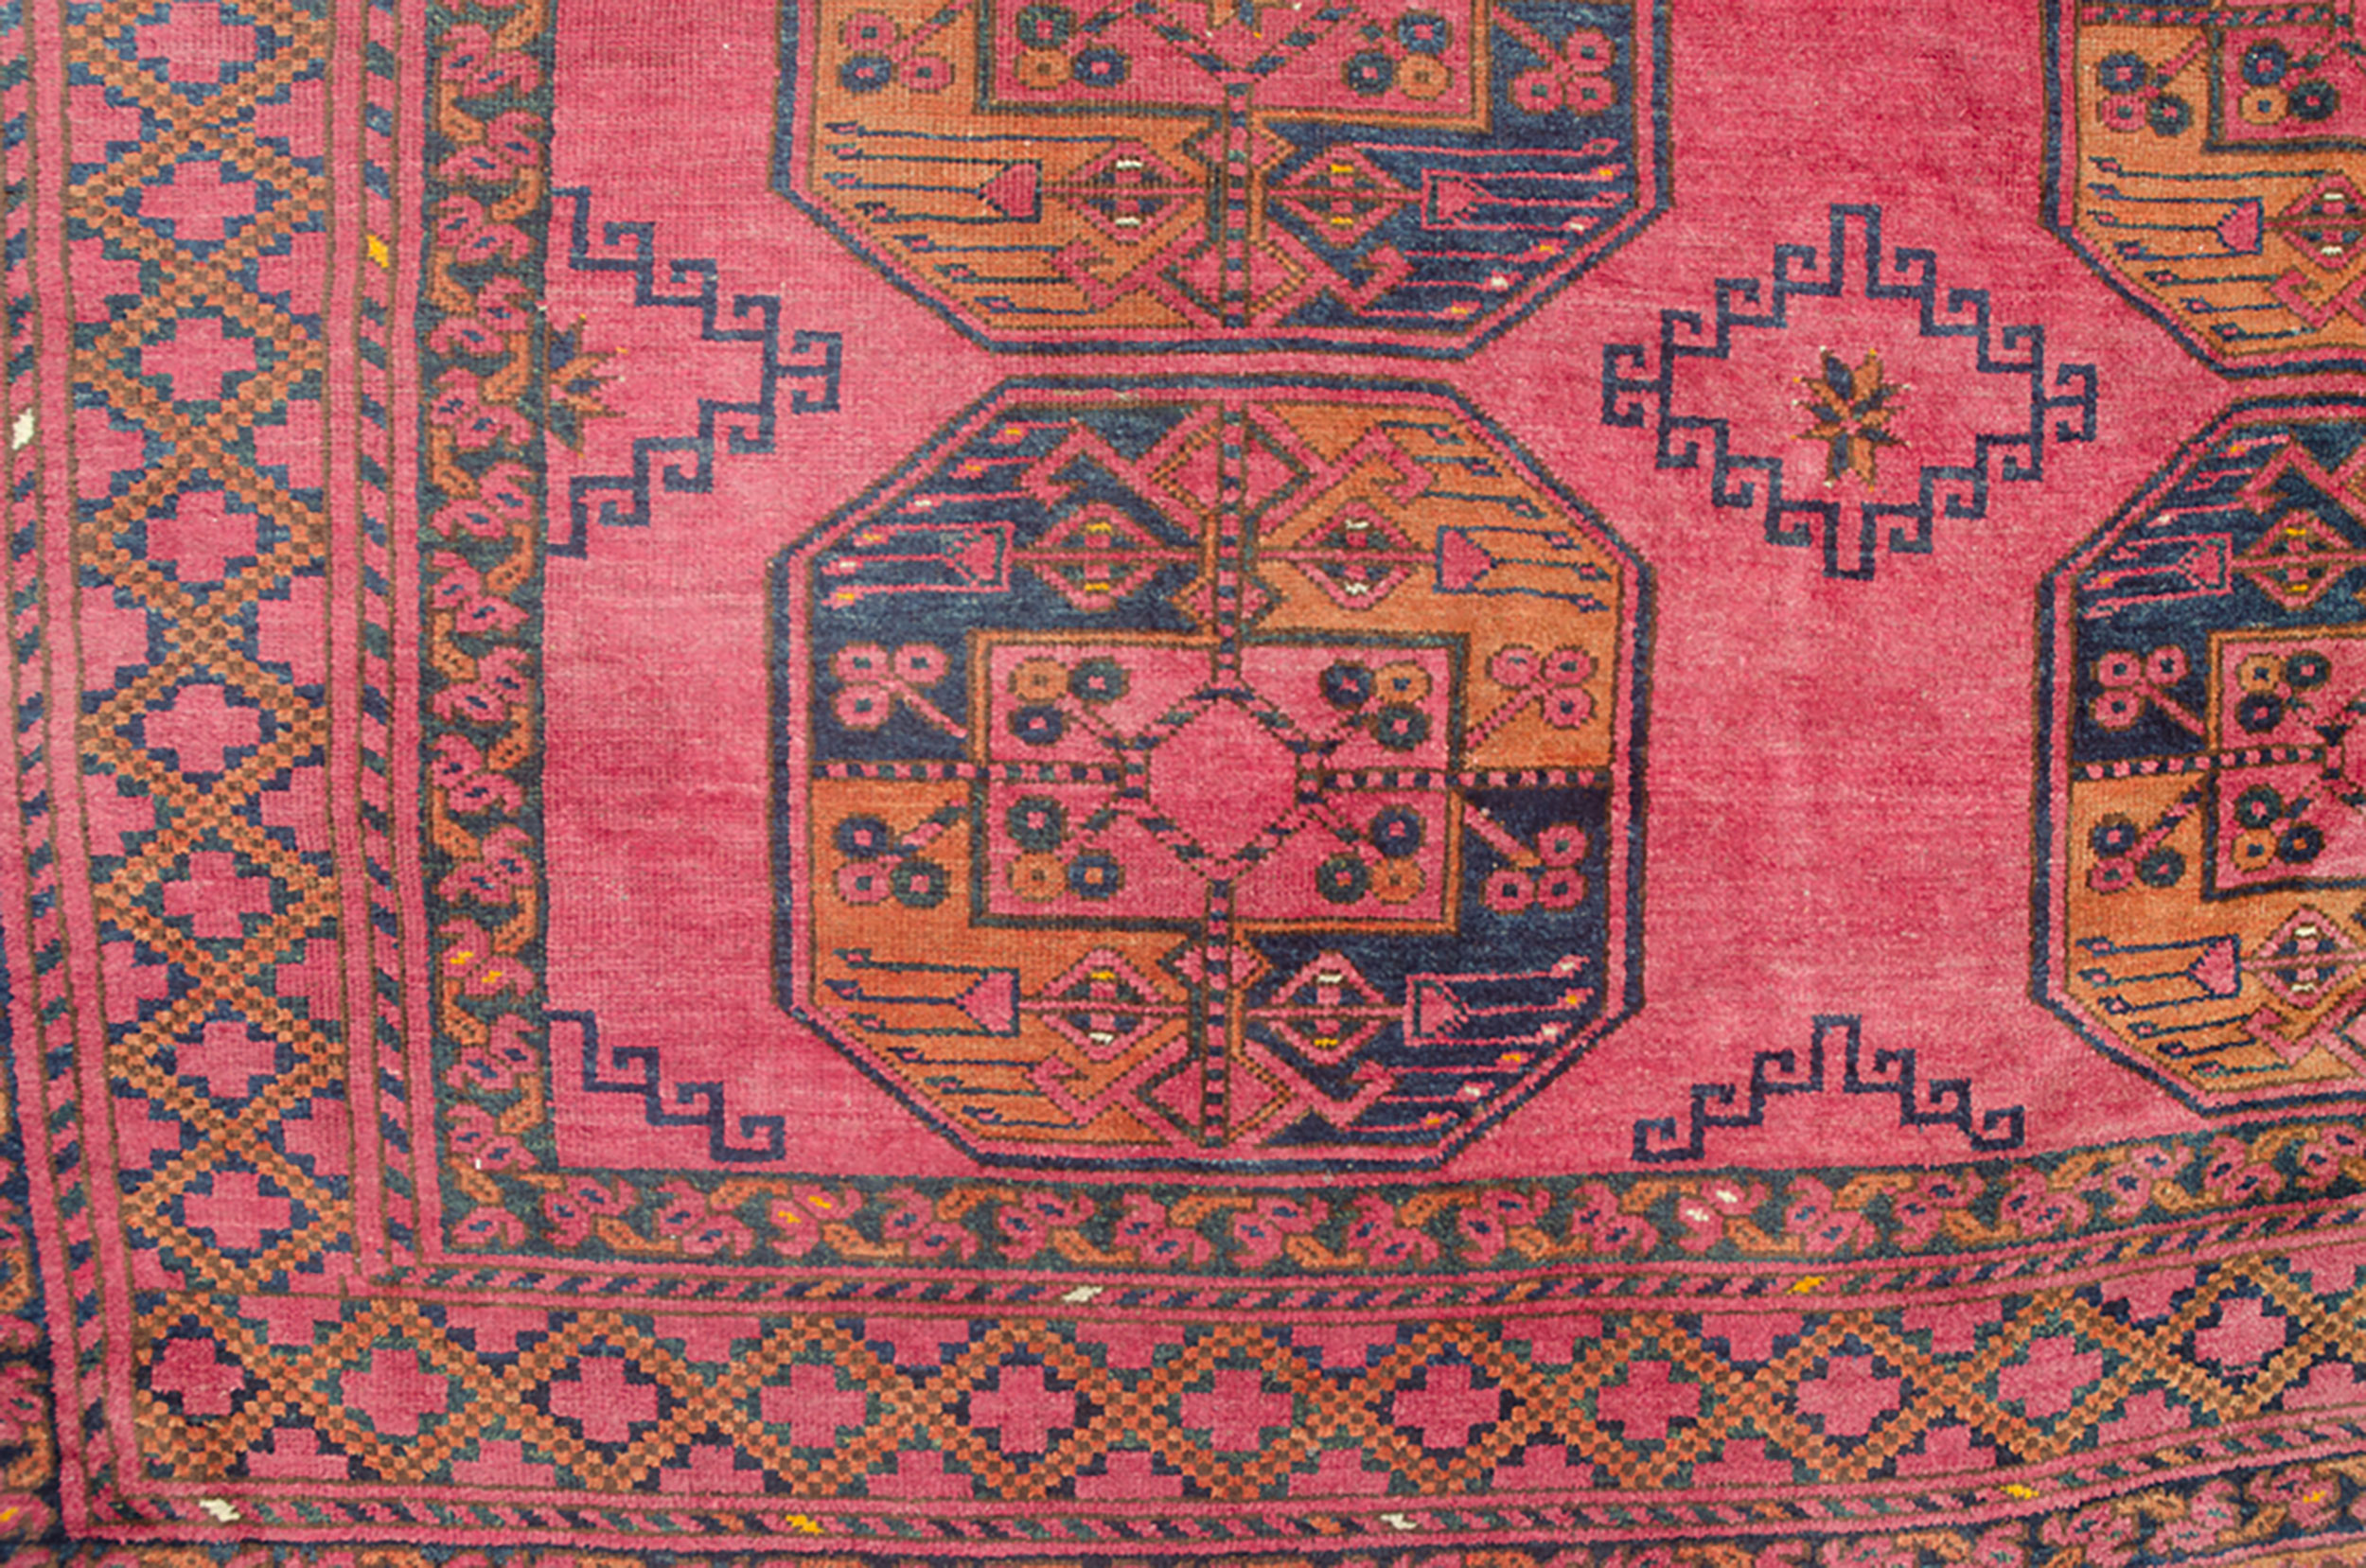 Antique Ersari Carpet 383x286cm